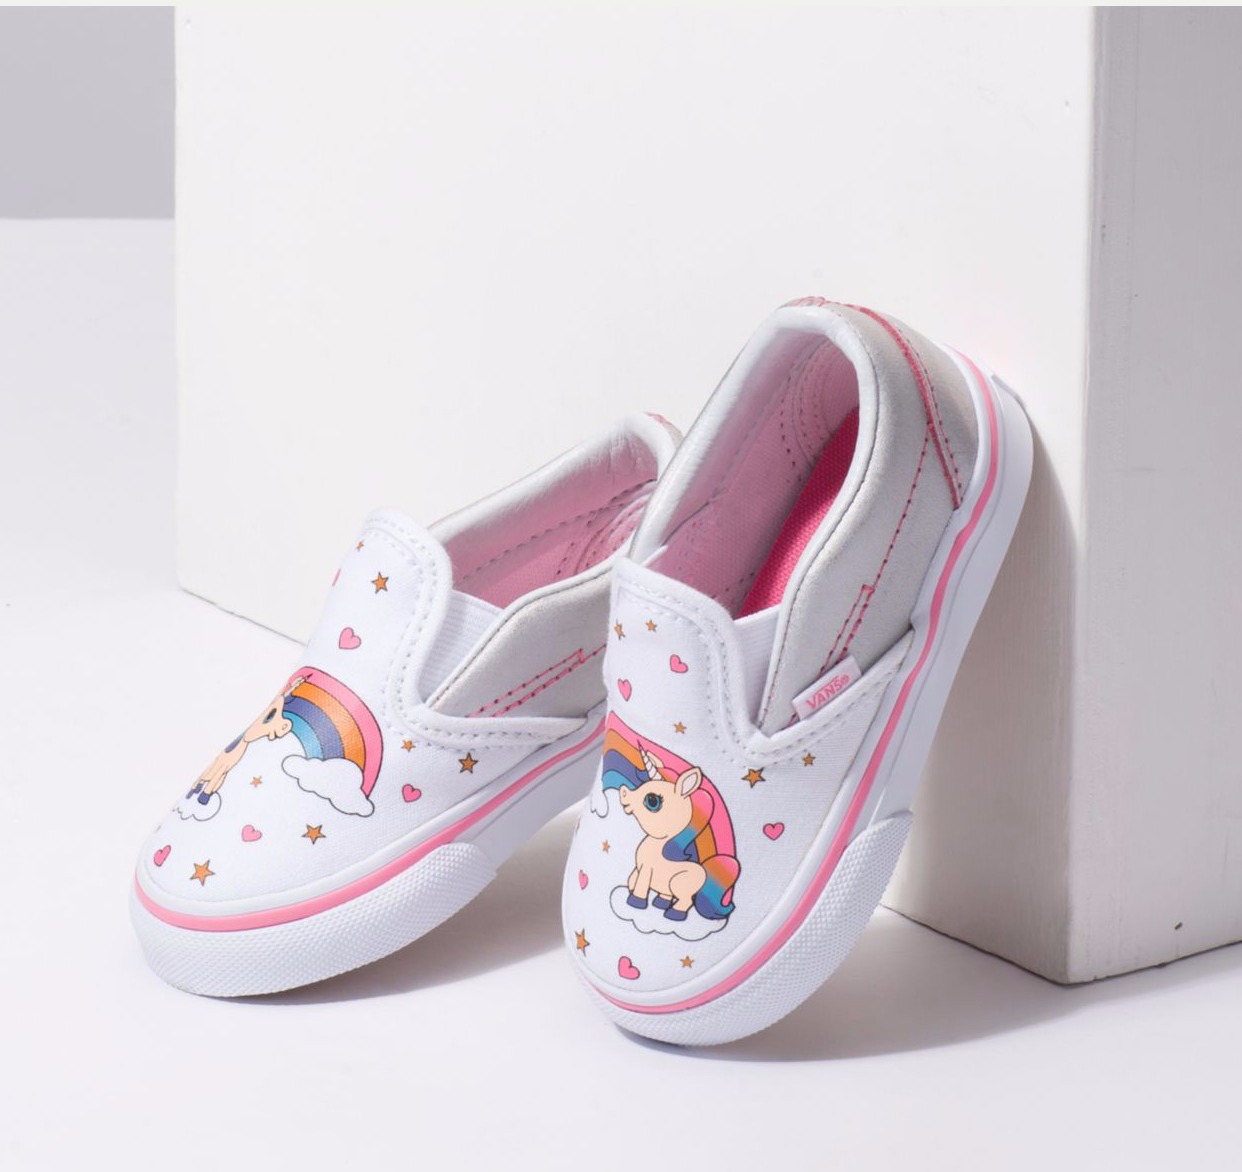 d09673540e60dc Unicorn Slip-On Sneaker for Toddlers - Unicorn and Rainbows